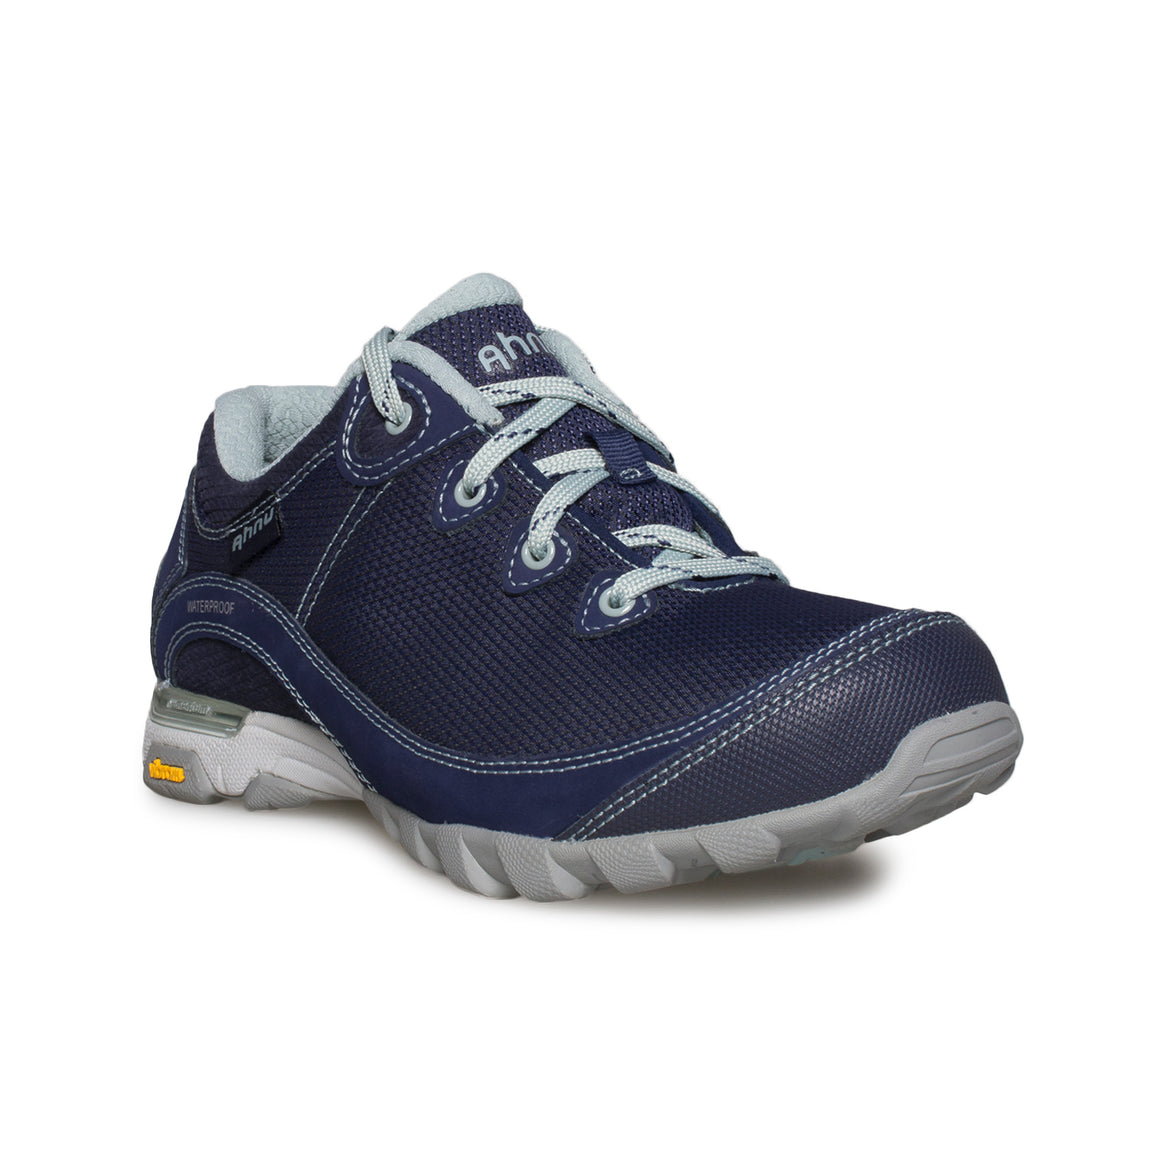 Ahnu Sugarpine II Ripstop Eclipse Shoes - Women's